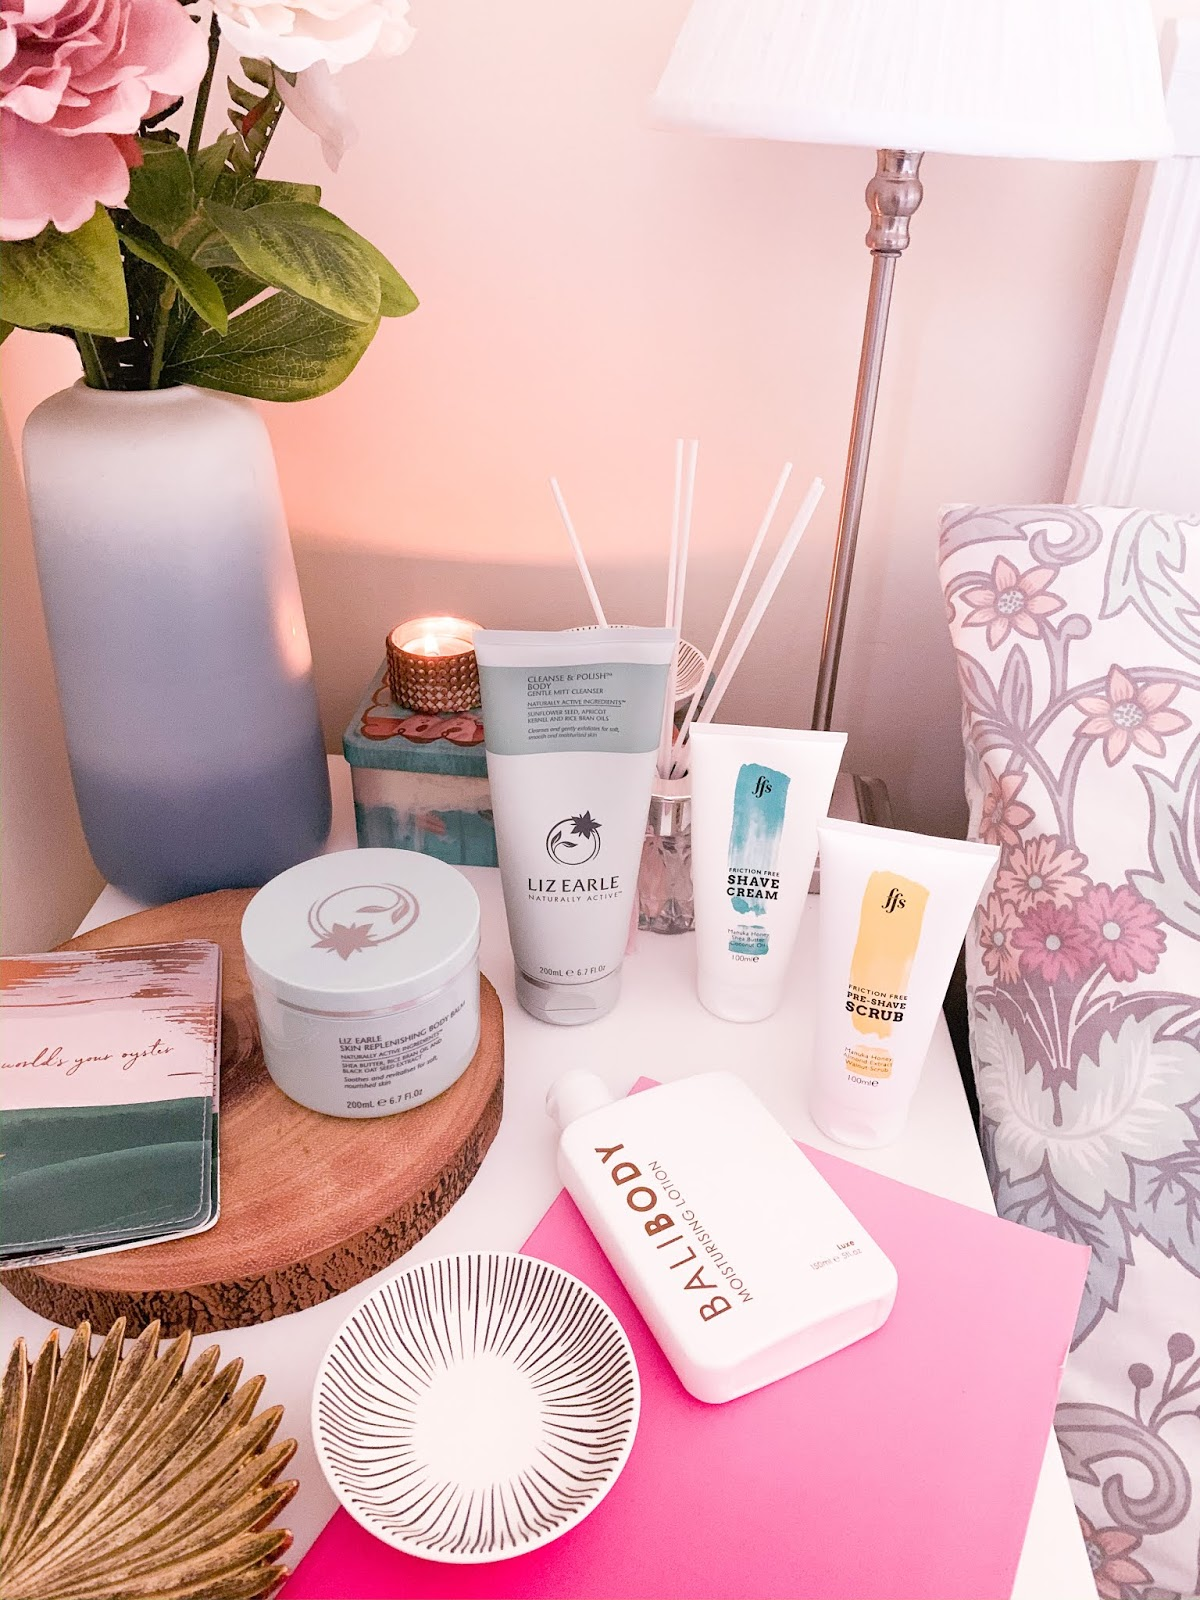 Body Care Products In My Collection image